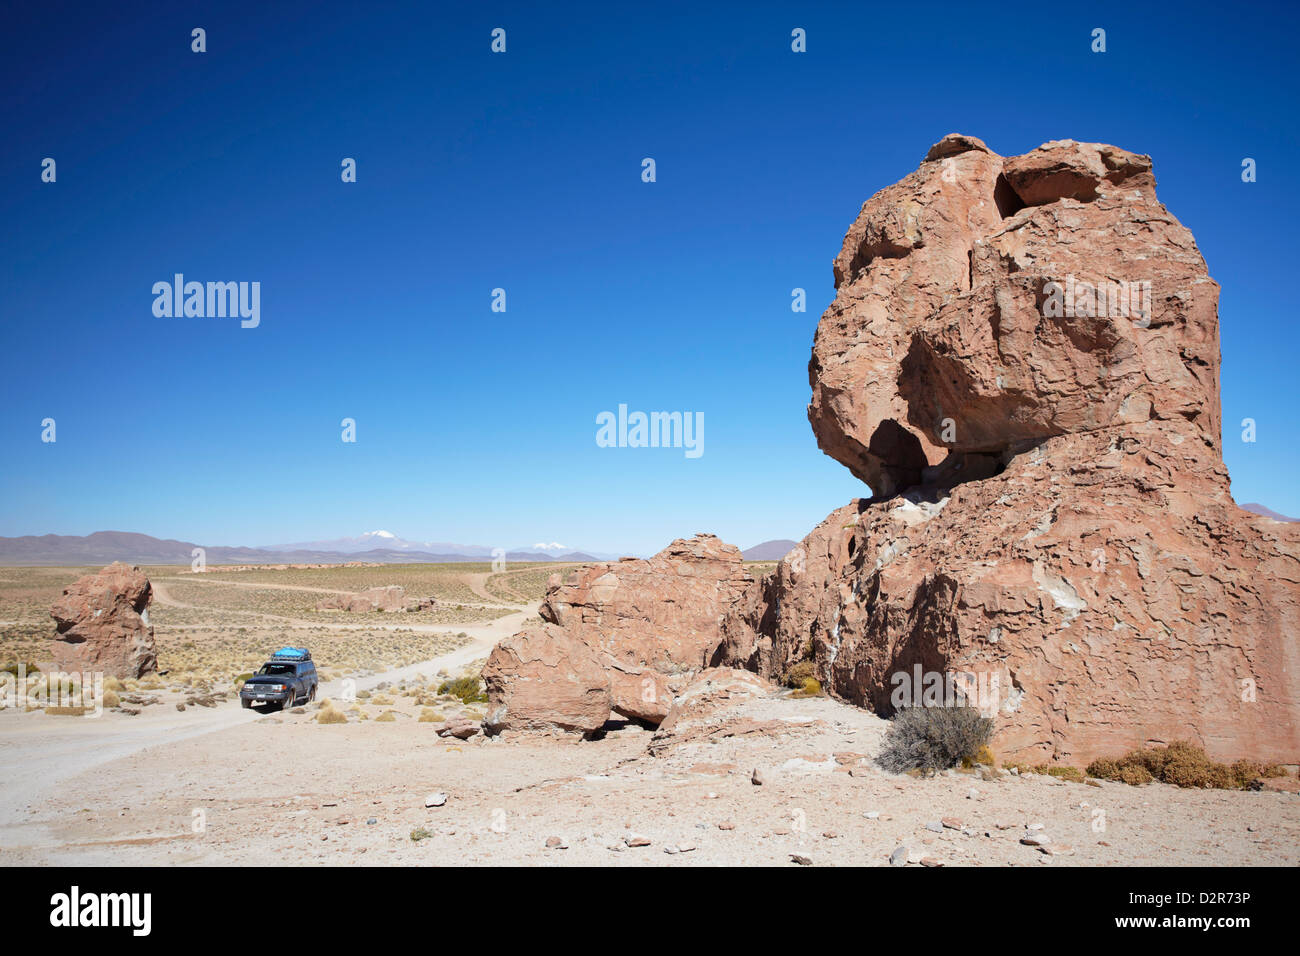 Jeep driving through rocky landscape on the Altiplano, Potosi Department, Bolivia, South America - Stock Image